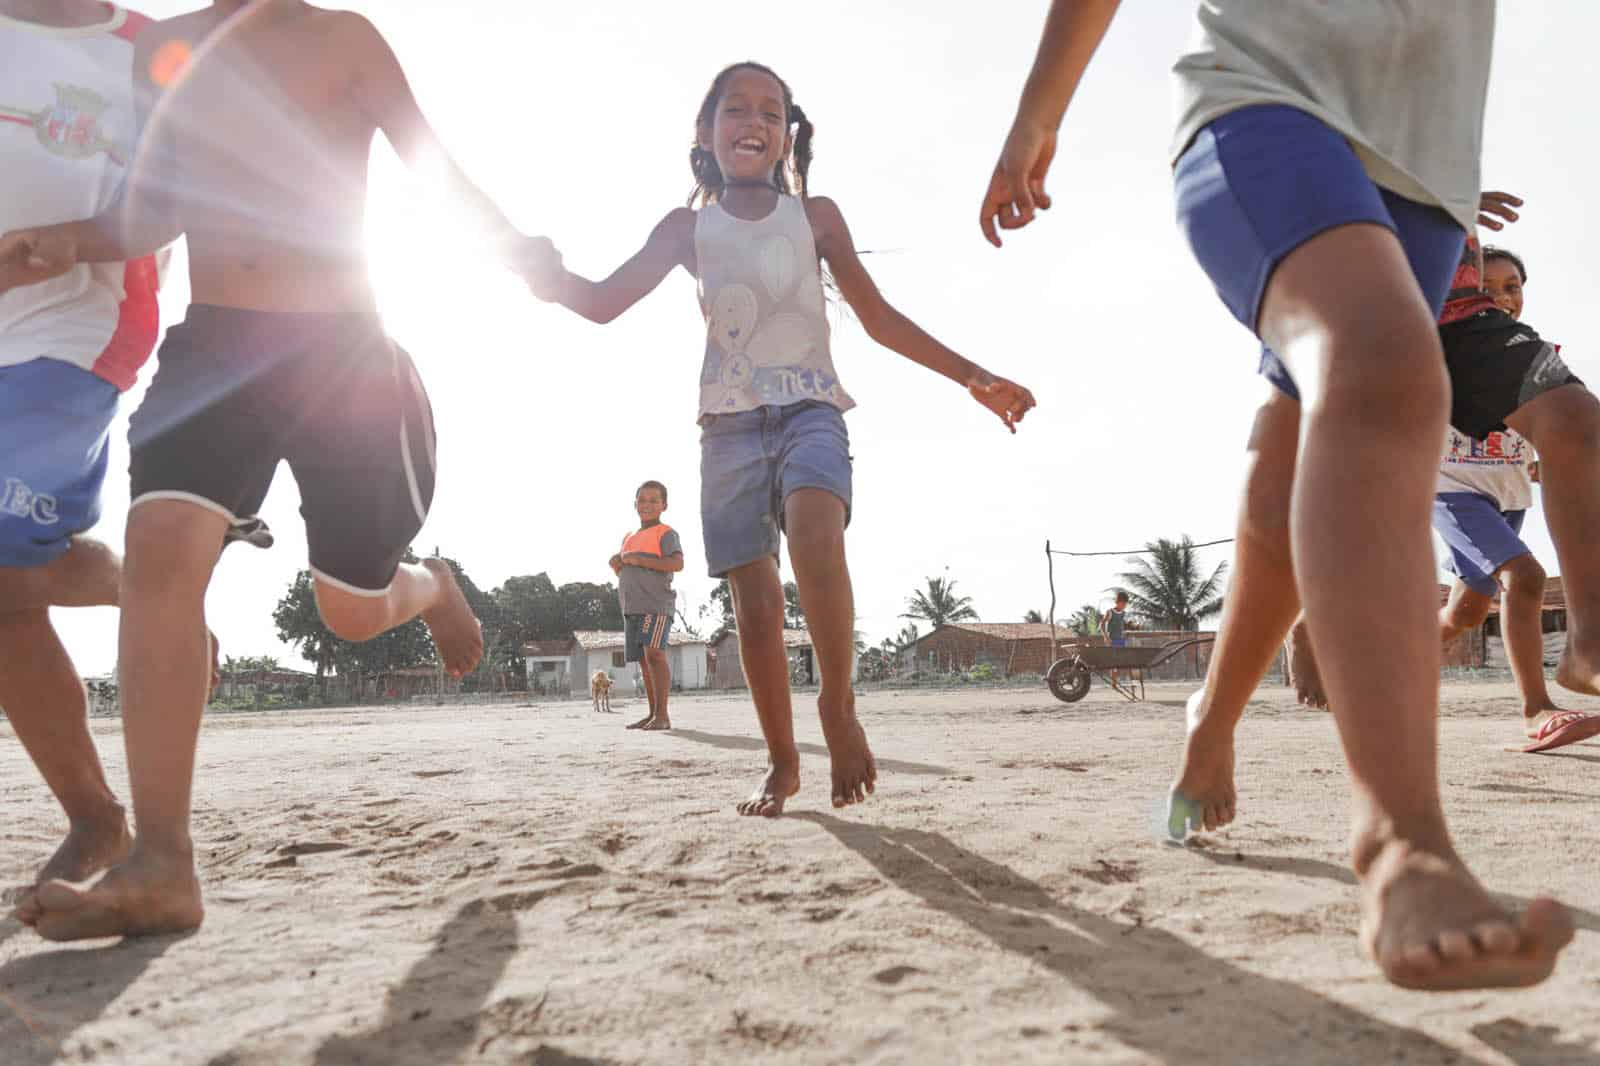 Klebiane running on sand with other children